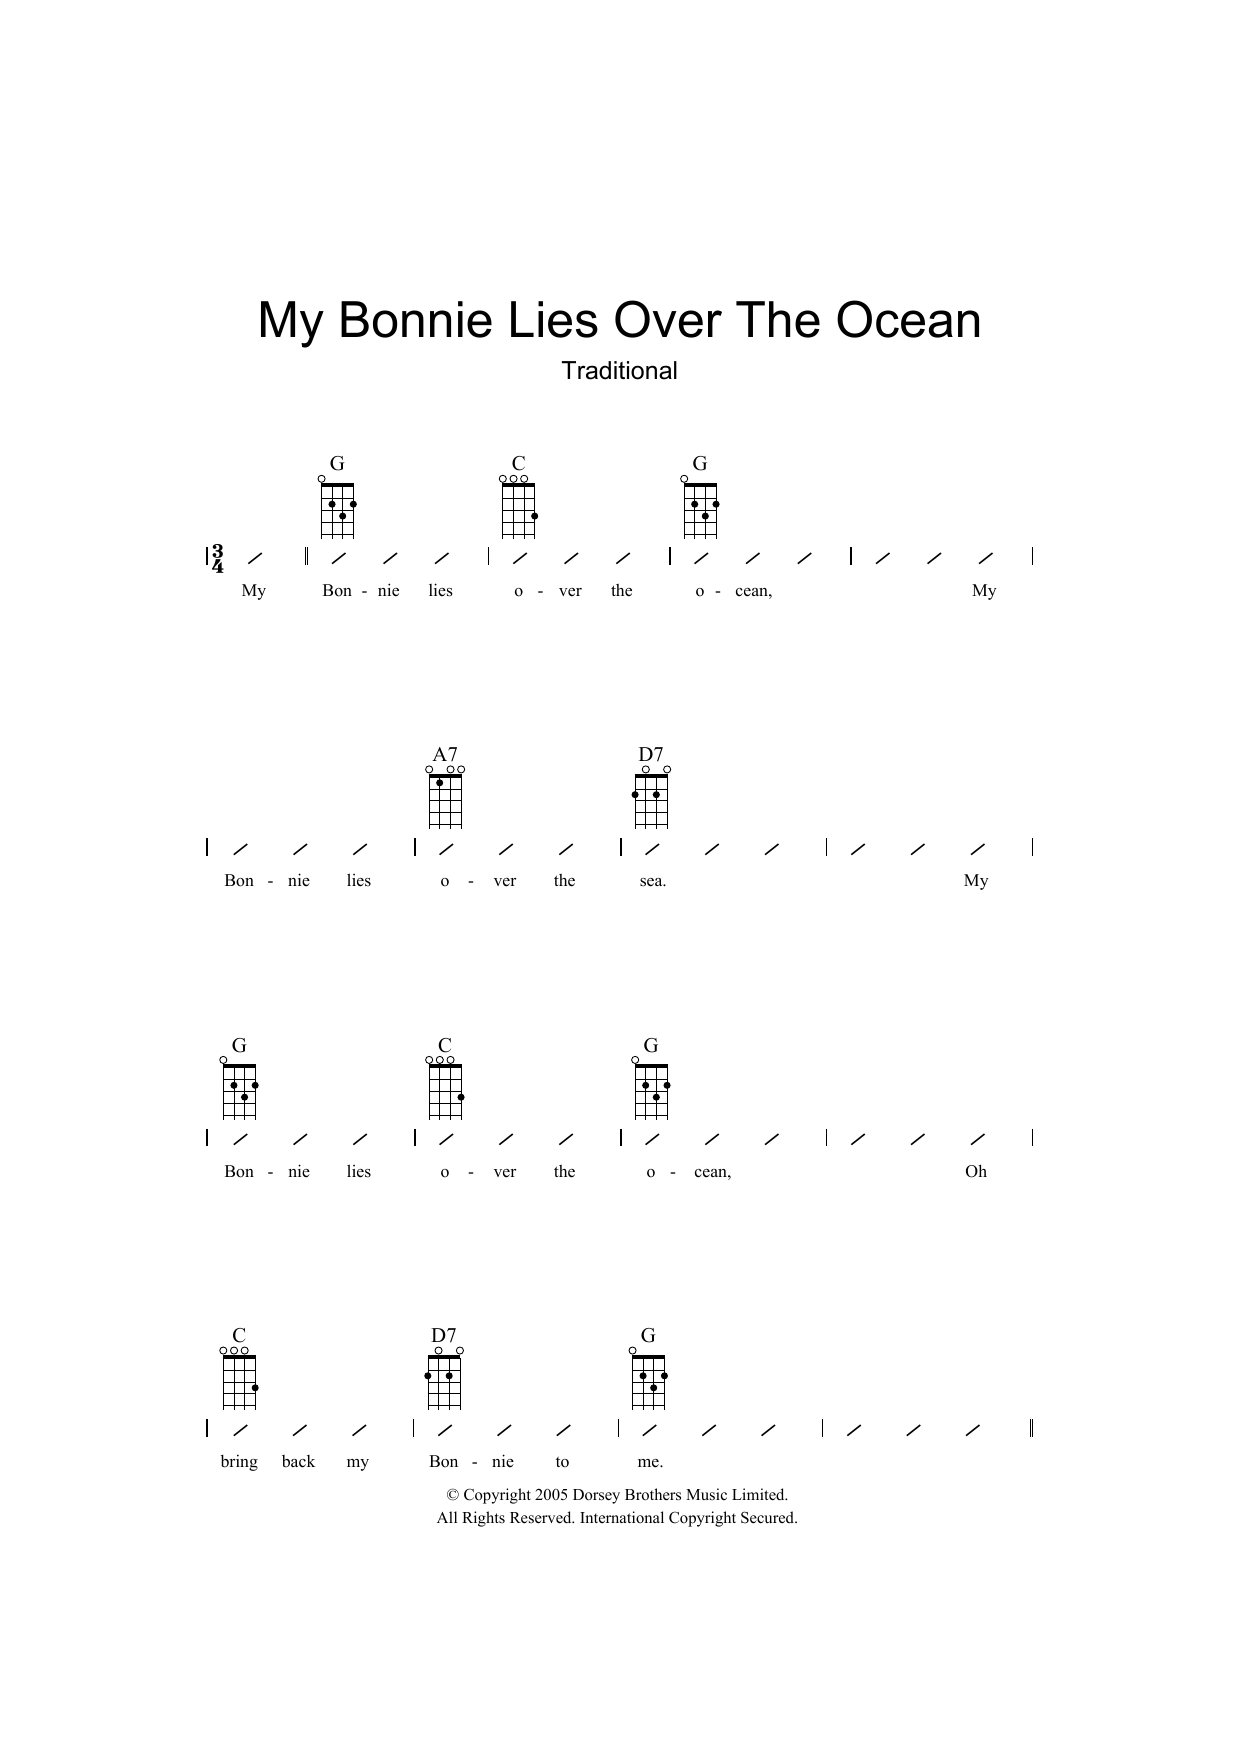 Traditional - My Bonnie Lies Over The Ocean